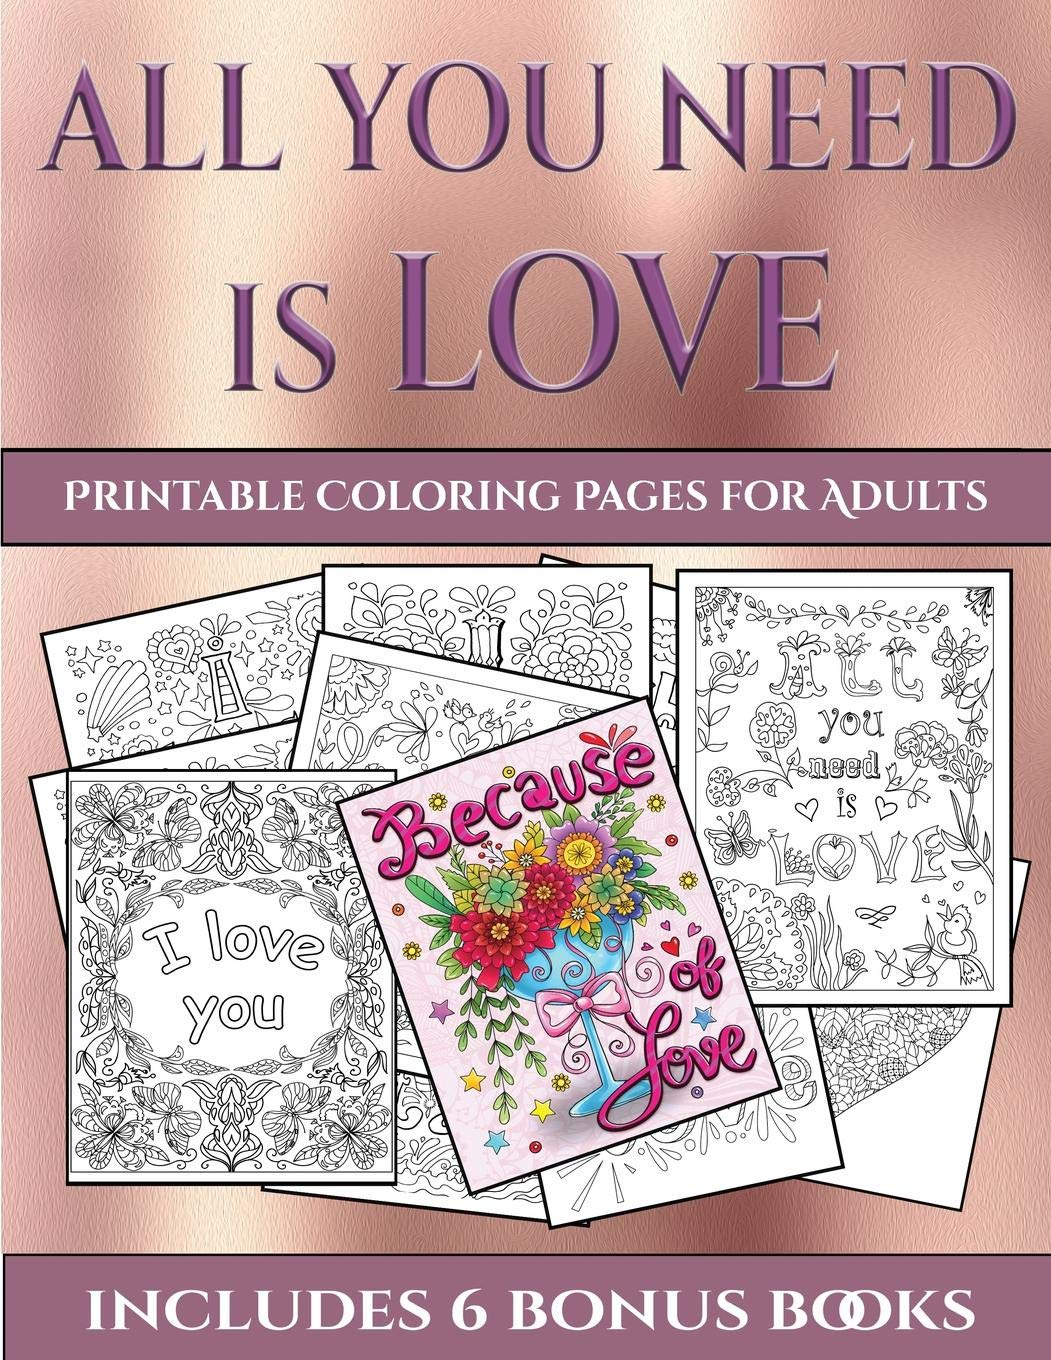 Buy Printable Coloring Pages For Adults All You Need Is Love